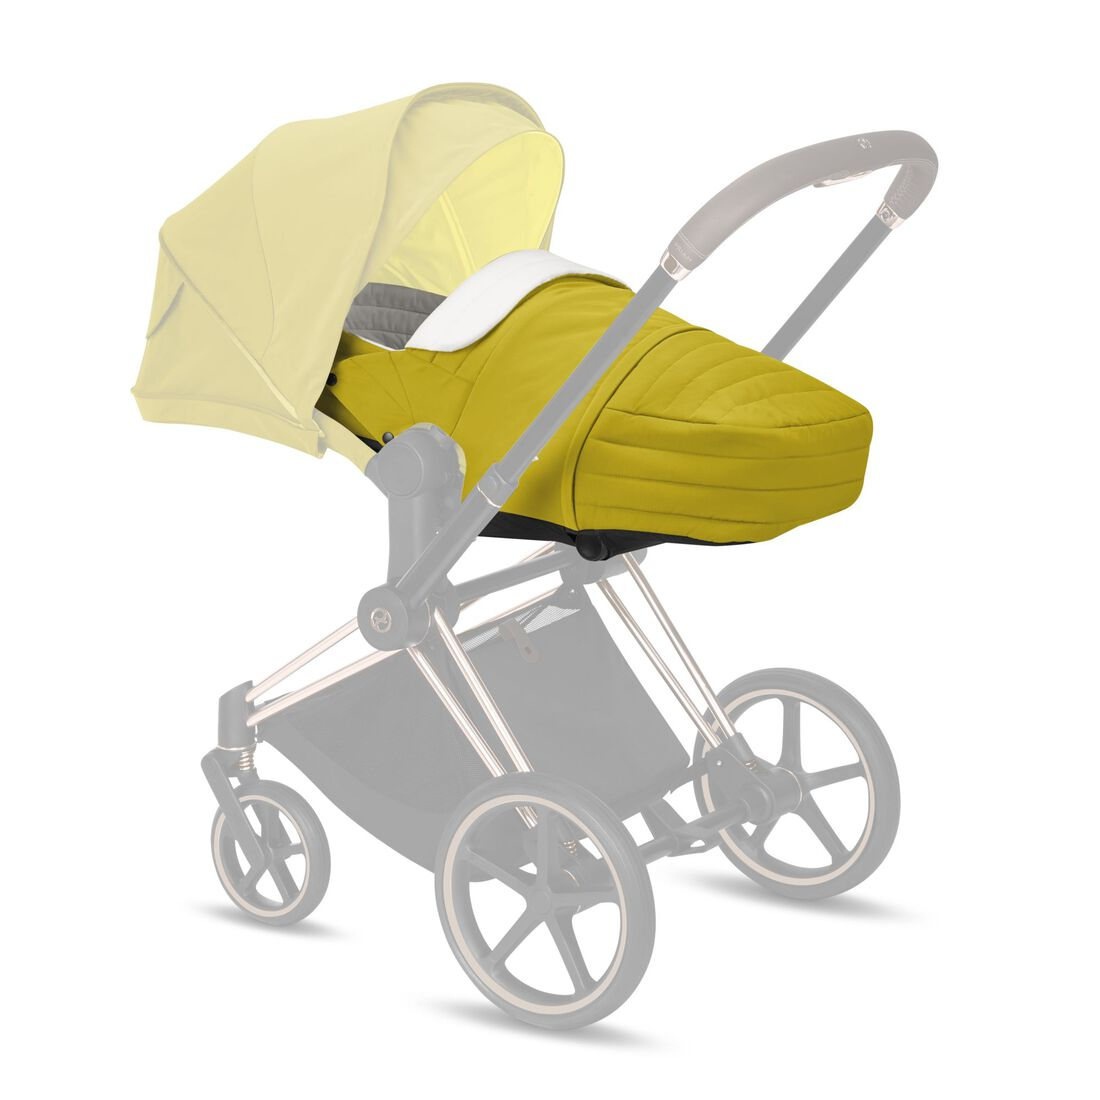 CYBEX Lite Cot - Mustard Yellow in Mustard Yellow large image number 1